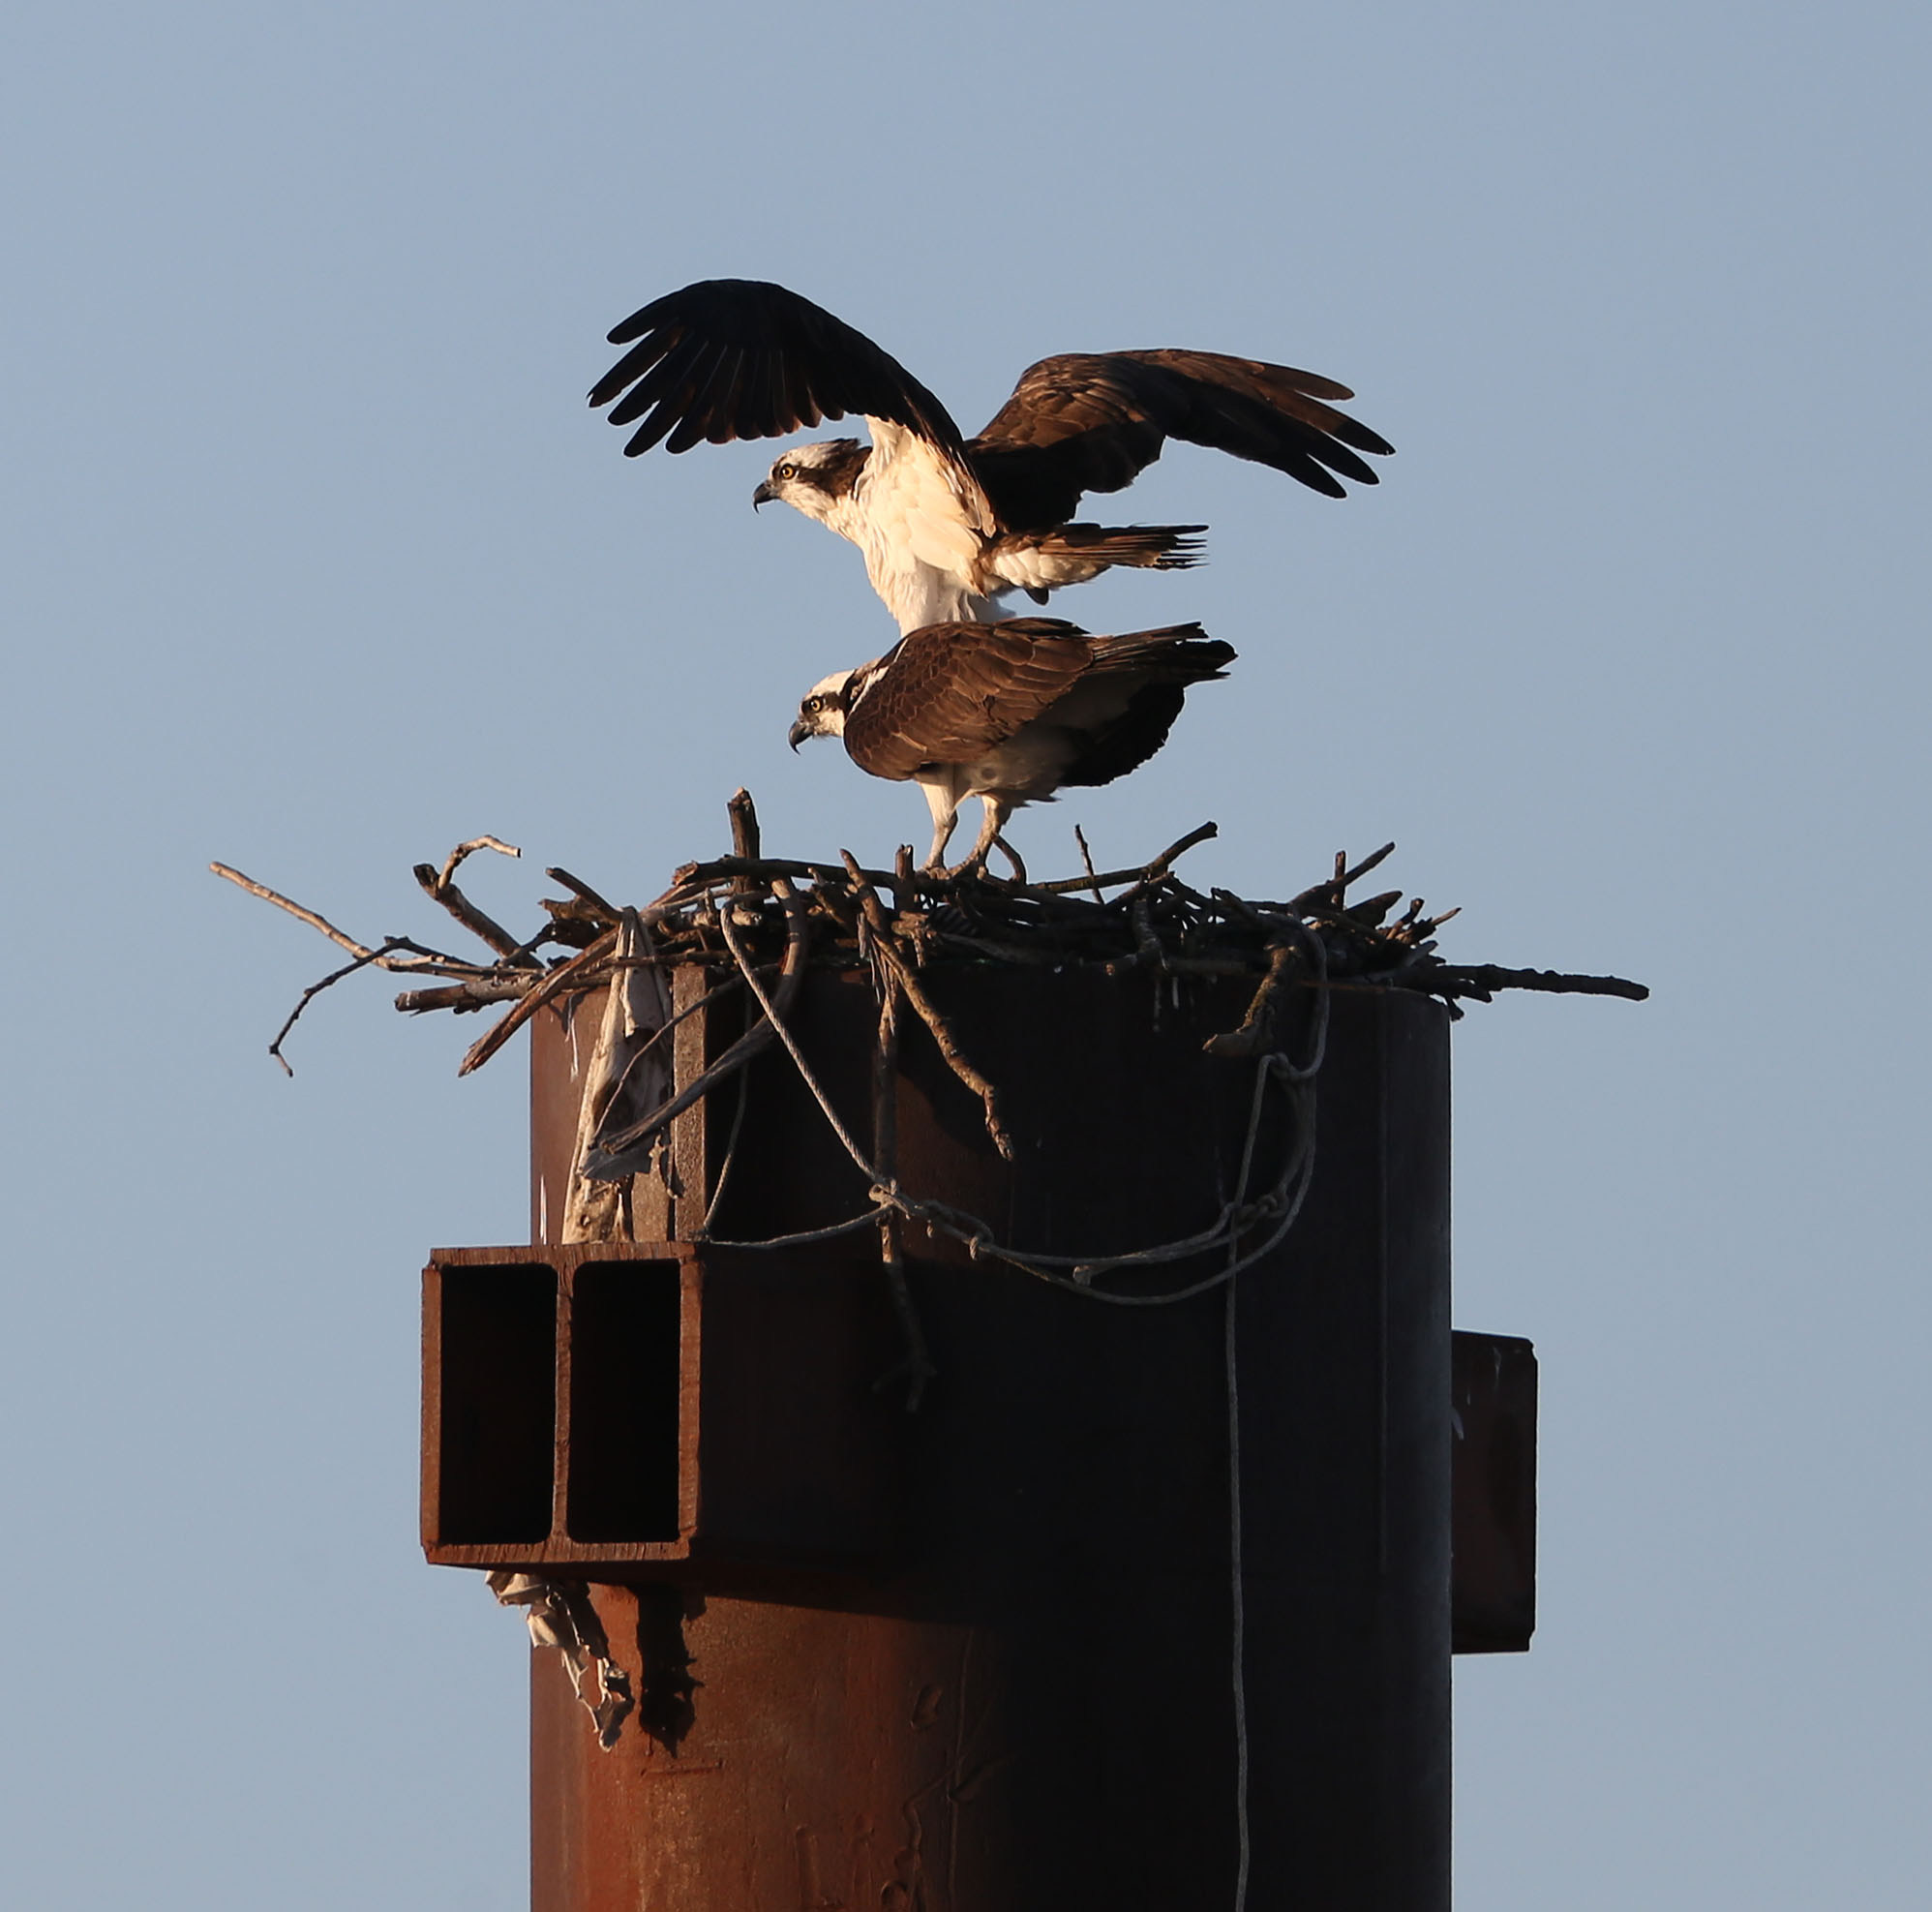 Male and female Osprey